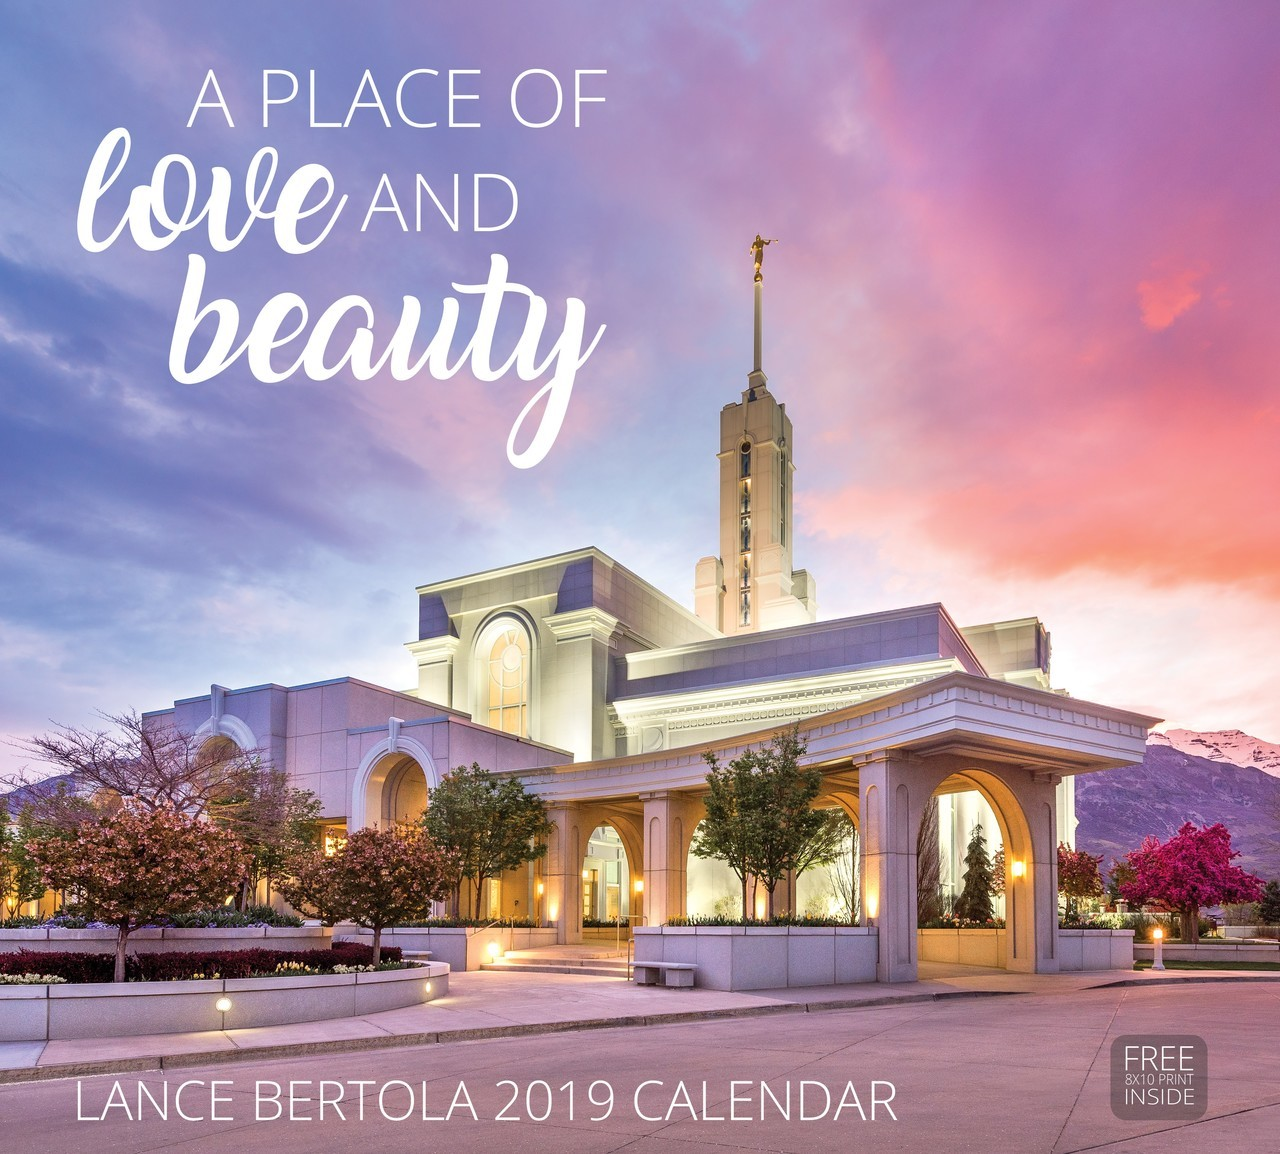 2019 A Place of Love and Beauty Calendar - Lance Bertola